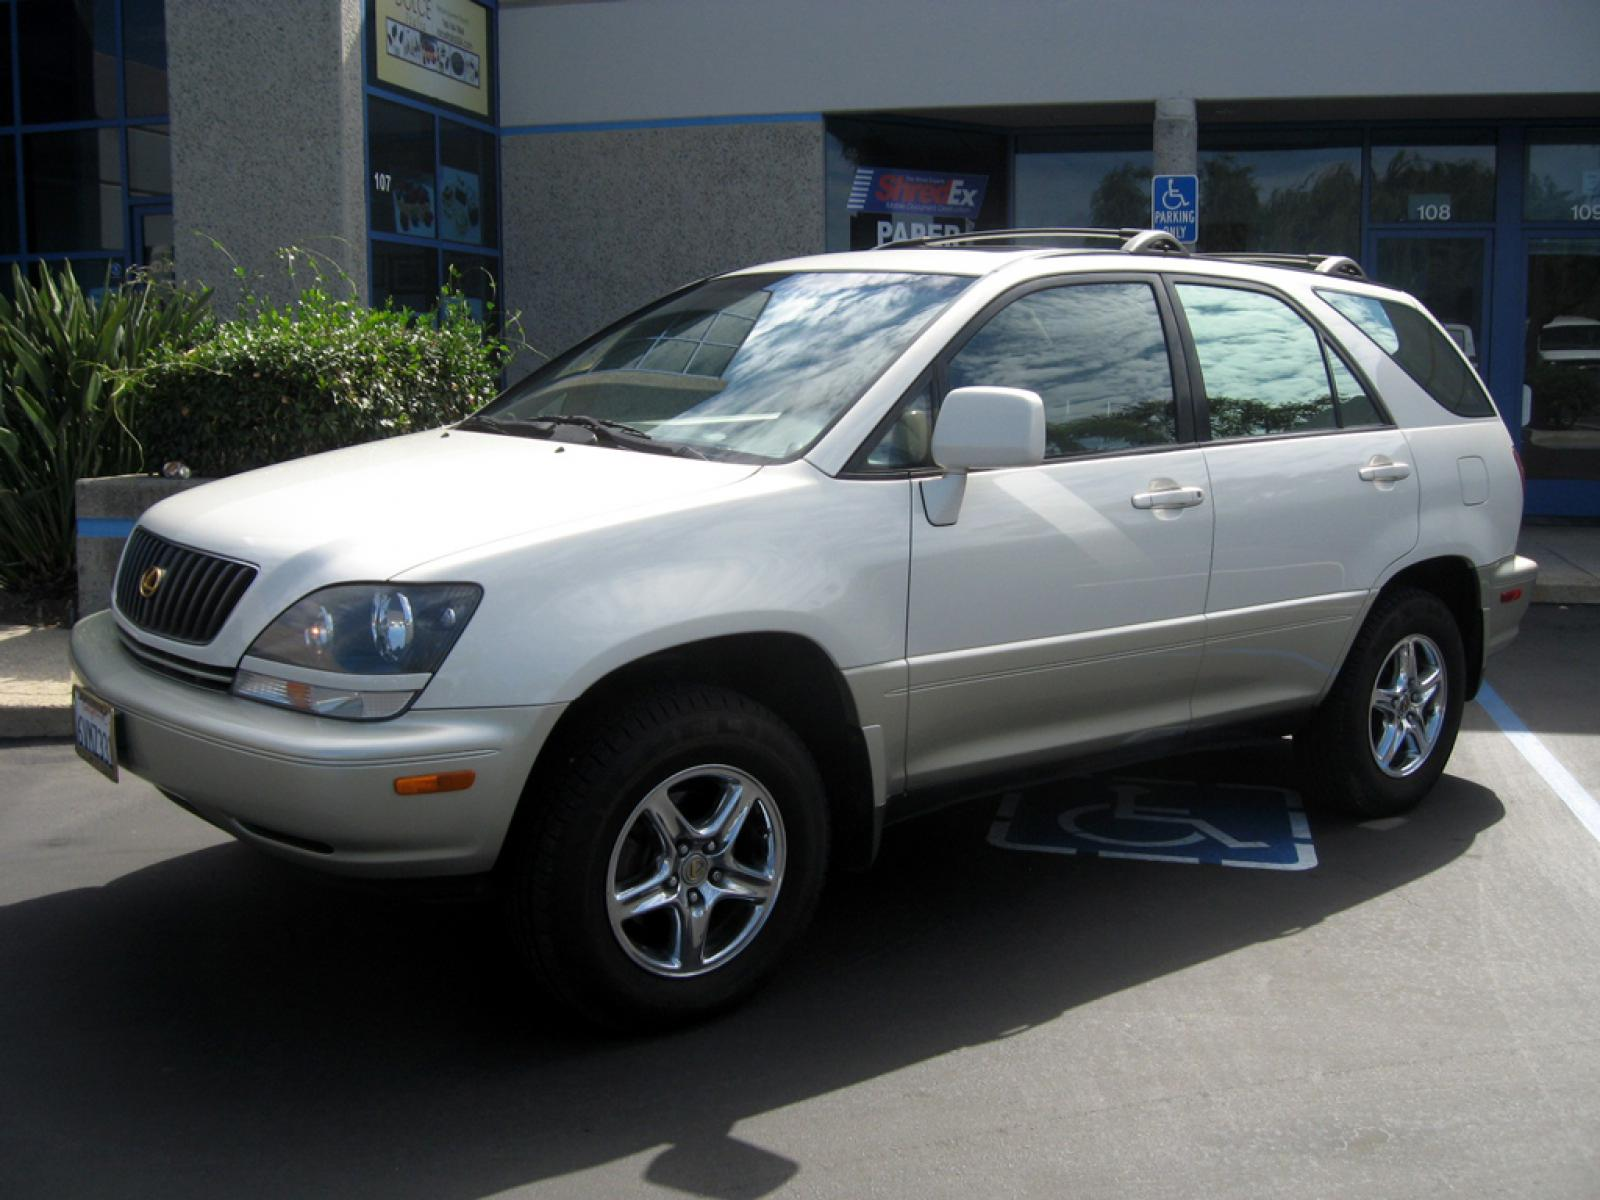 2000 Lexus RX 300 Information and photos ZombieDrive